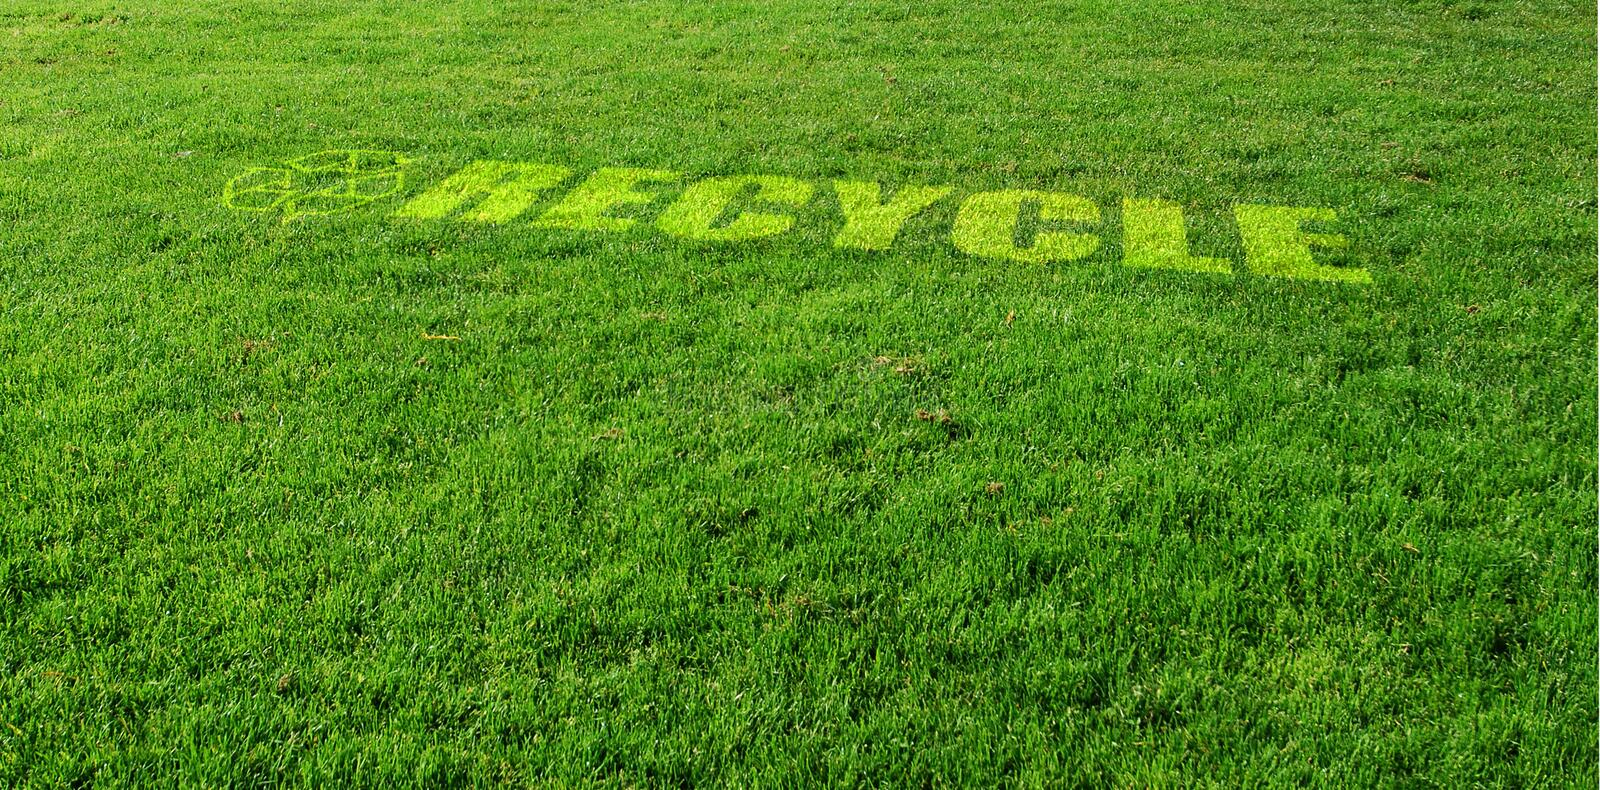 Green Recycling. Recycle Symbol on Green Lawn royalty free stock image